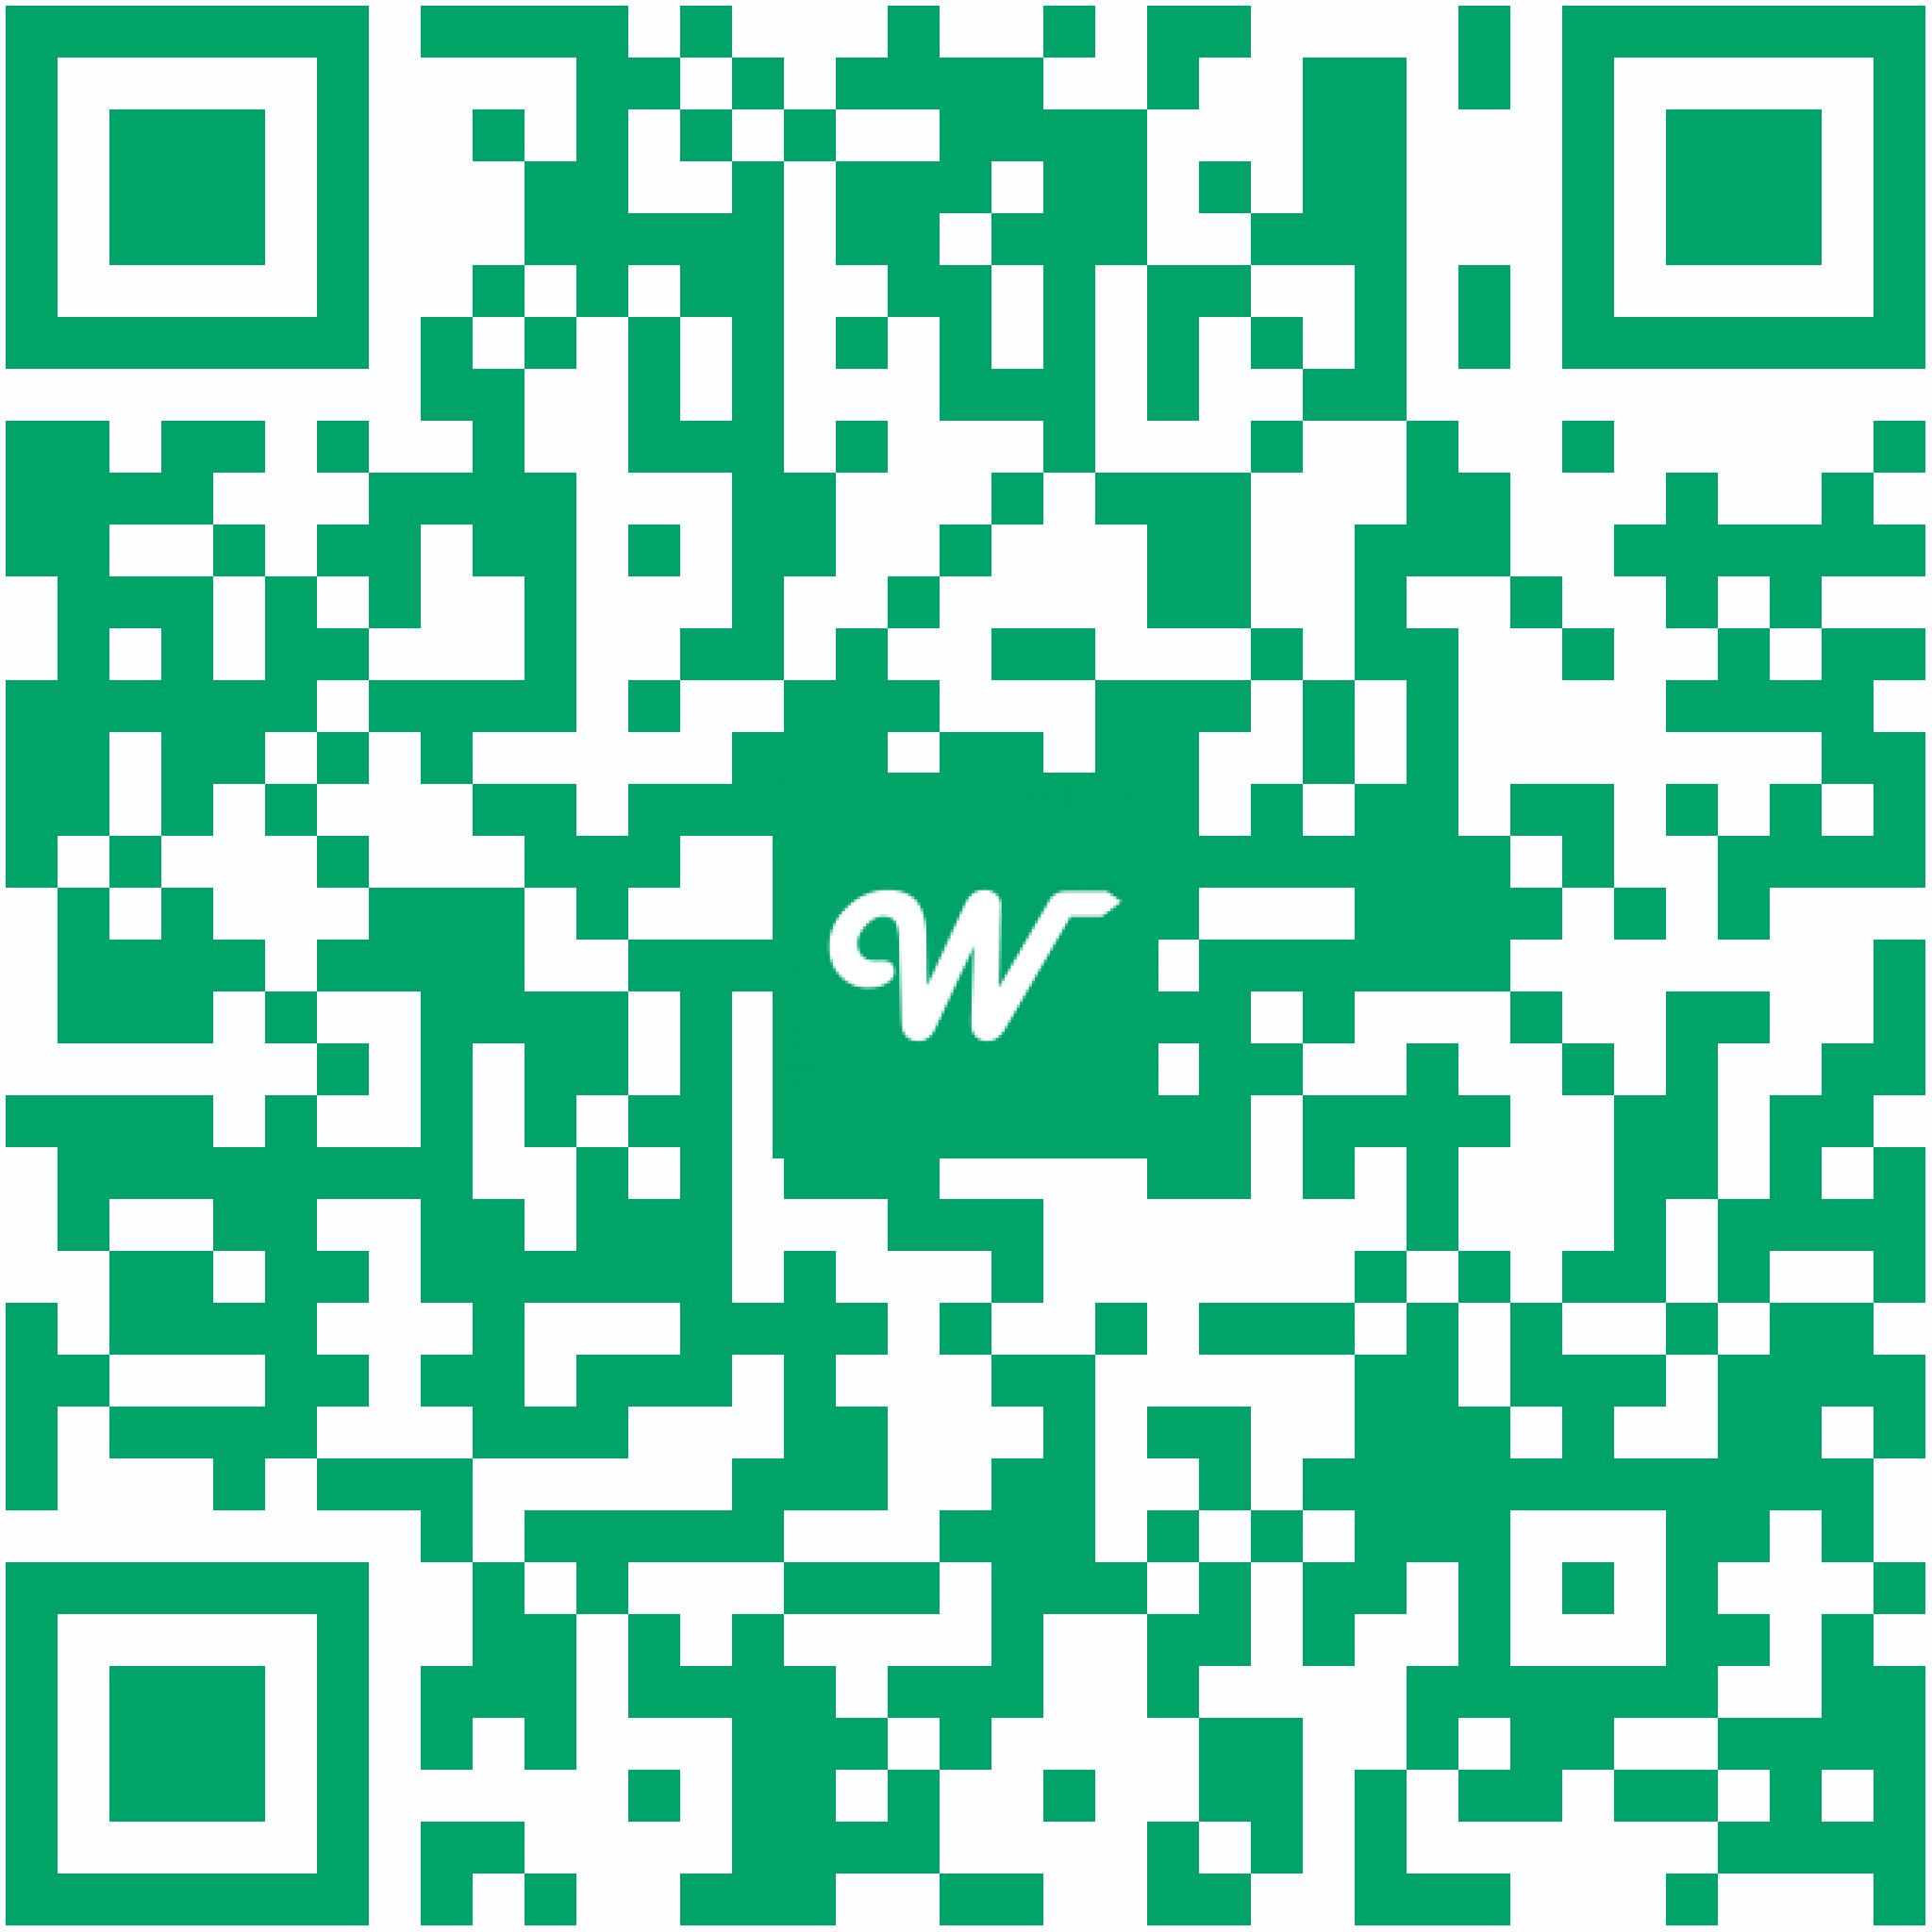 Printable QR code for Manxeon Display System Supplier